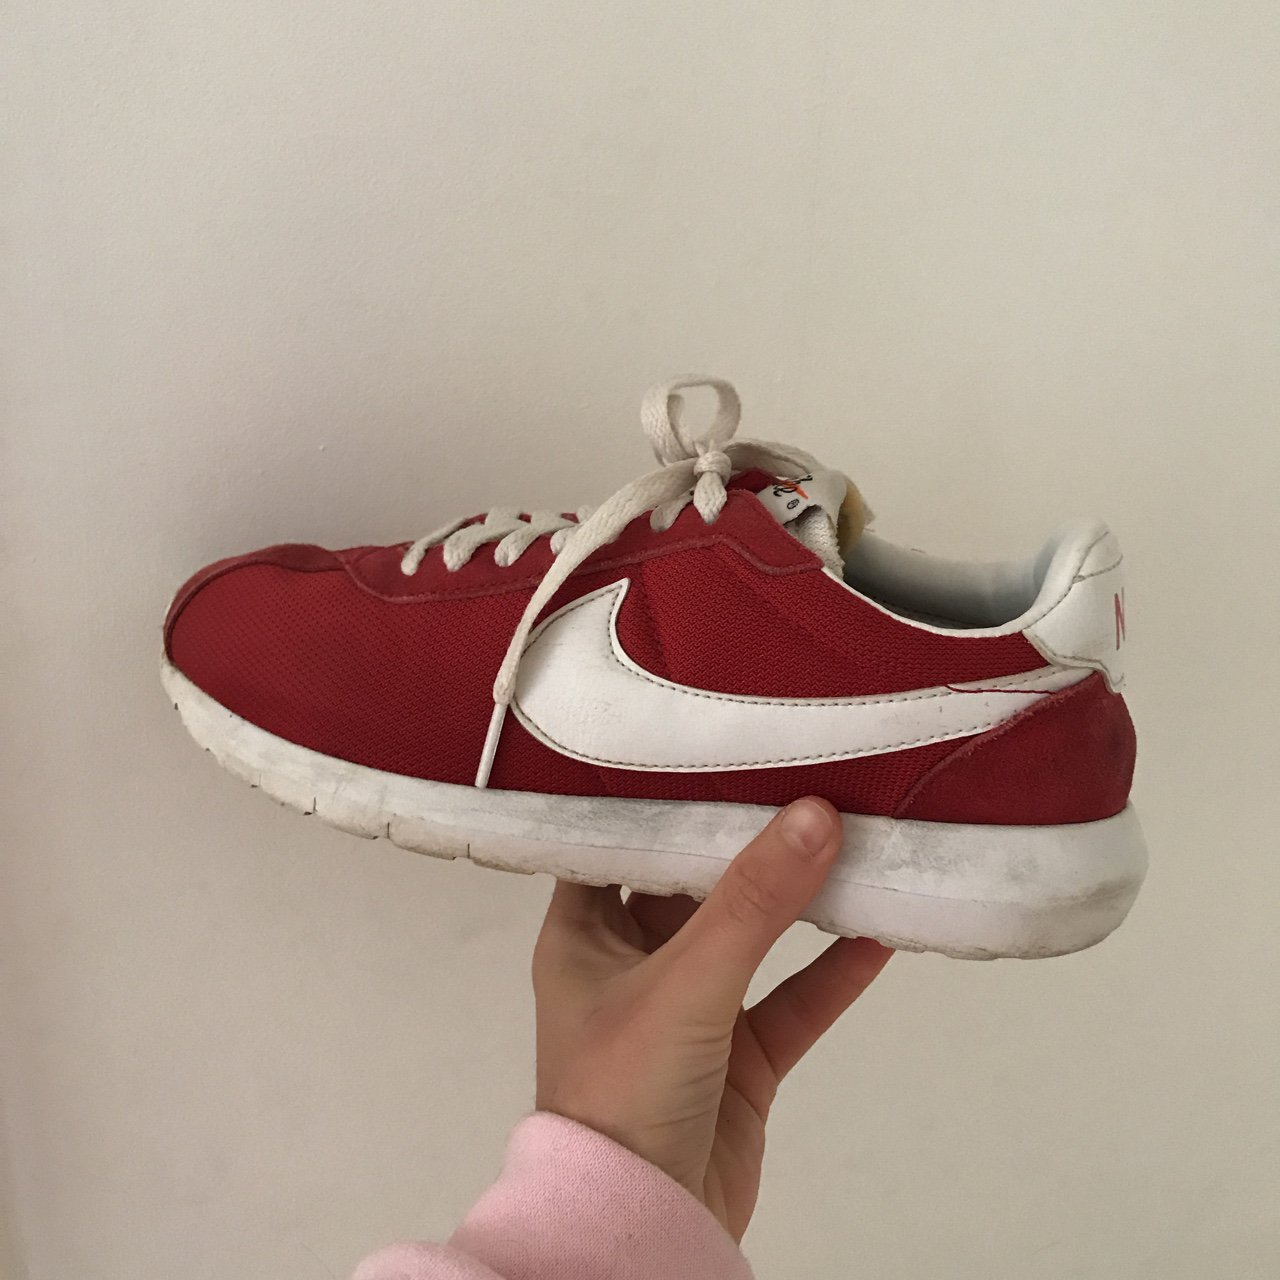 Nike Roshe Cortez . Colour   red Size   5 Brand   Nike . - Depop a2fb9c1d1798